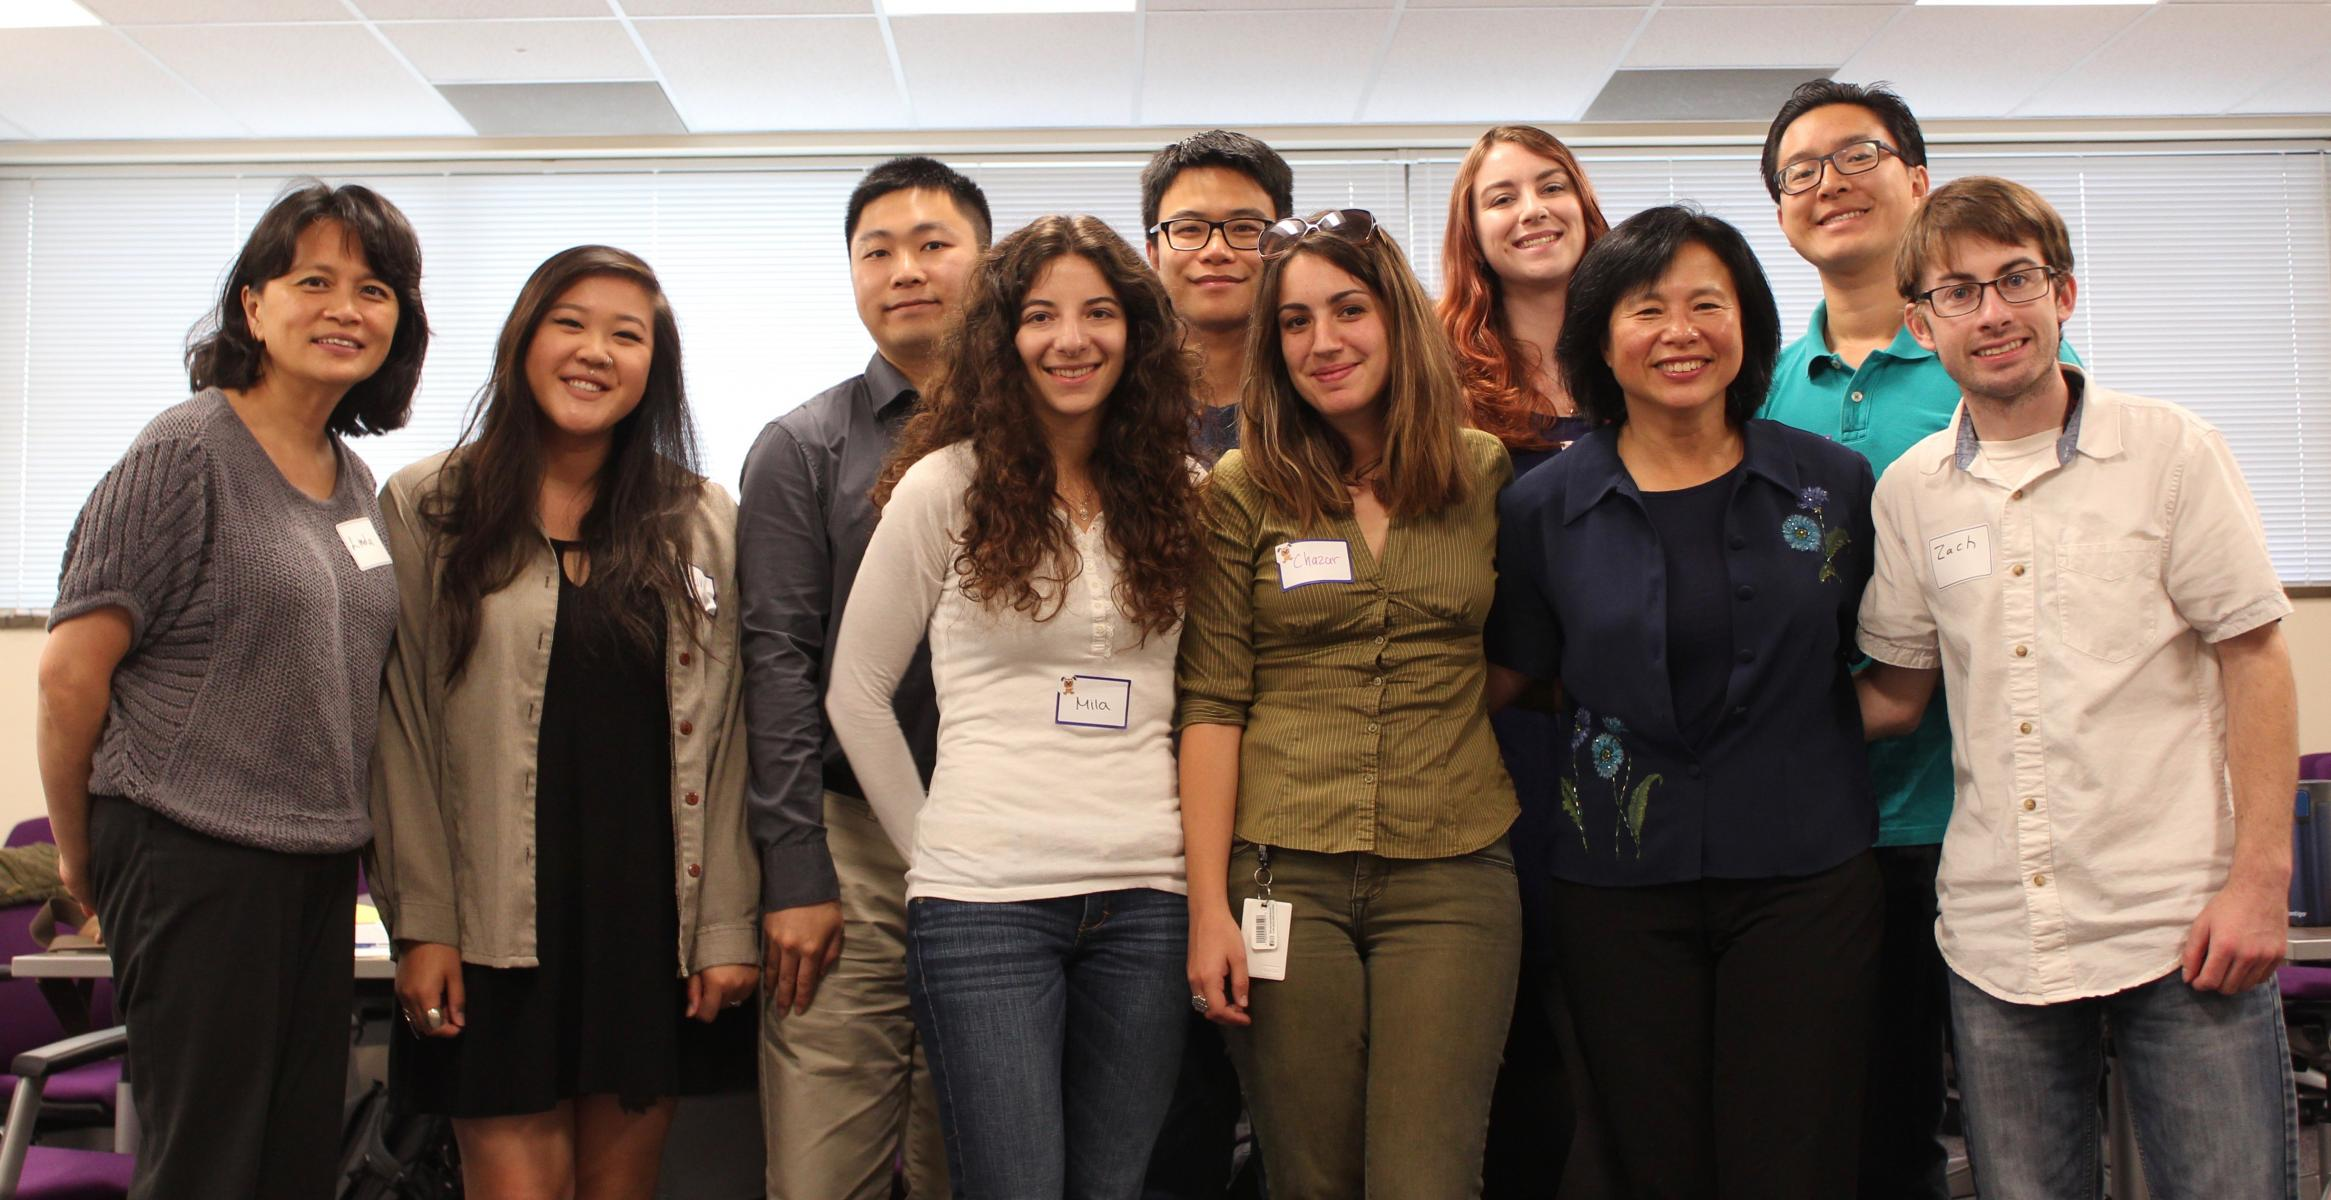 Cohort 8 Class students with Dr. Lily Chen and Dr. Linda Chen at 2017 orientation meeting